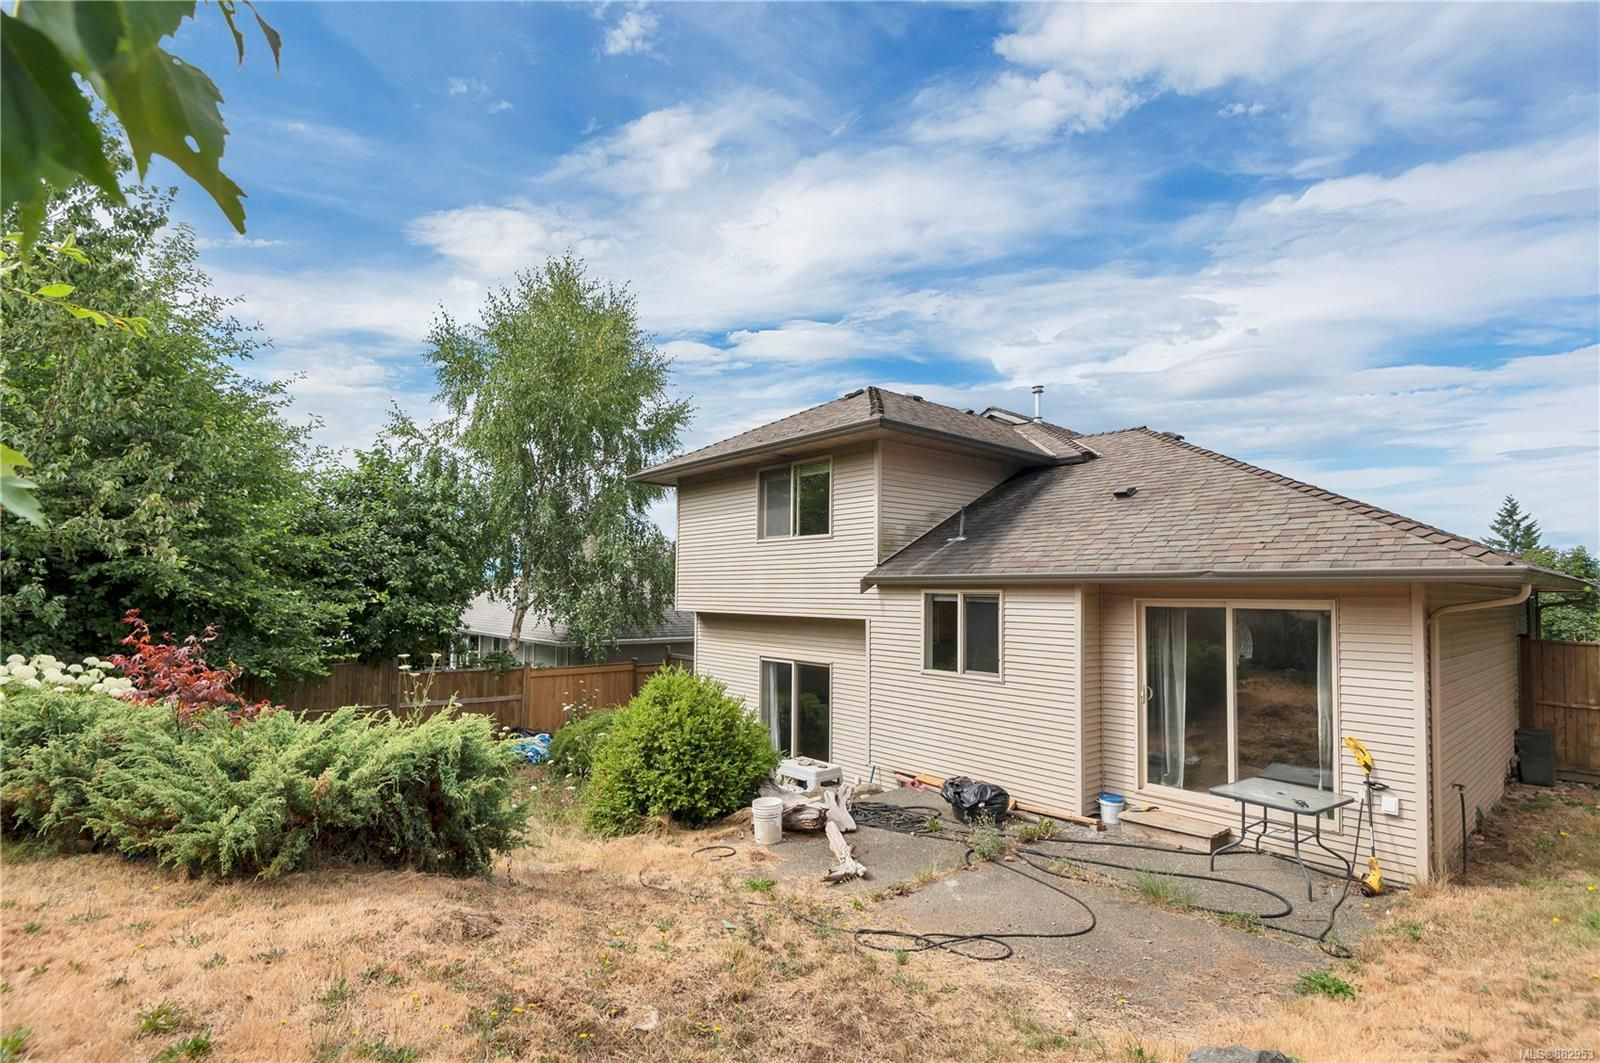 Photo 37: Photos: 732 Oribi Dr in : CR Campbell River Central House for sale (Campbell River)  : MLS®# 882953